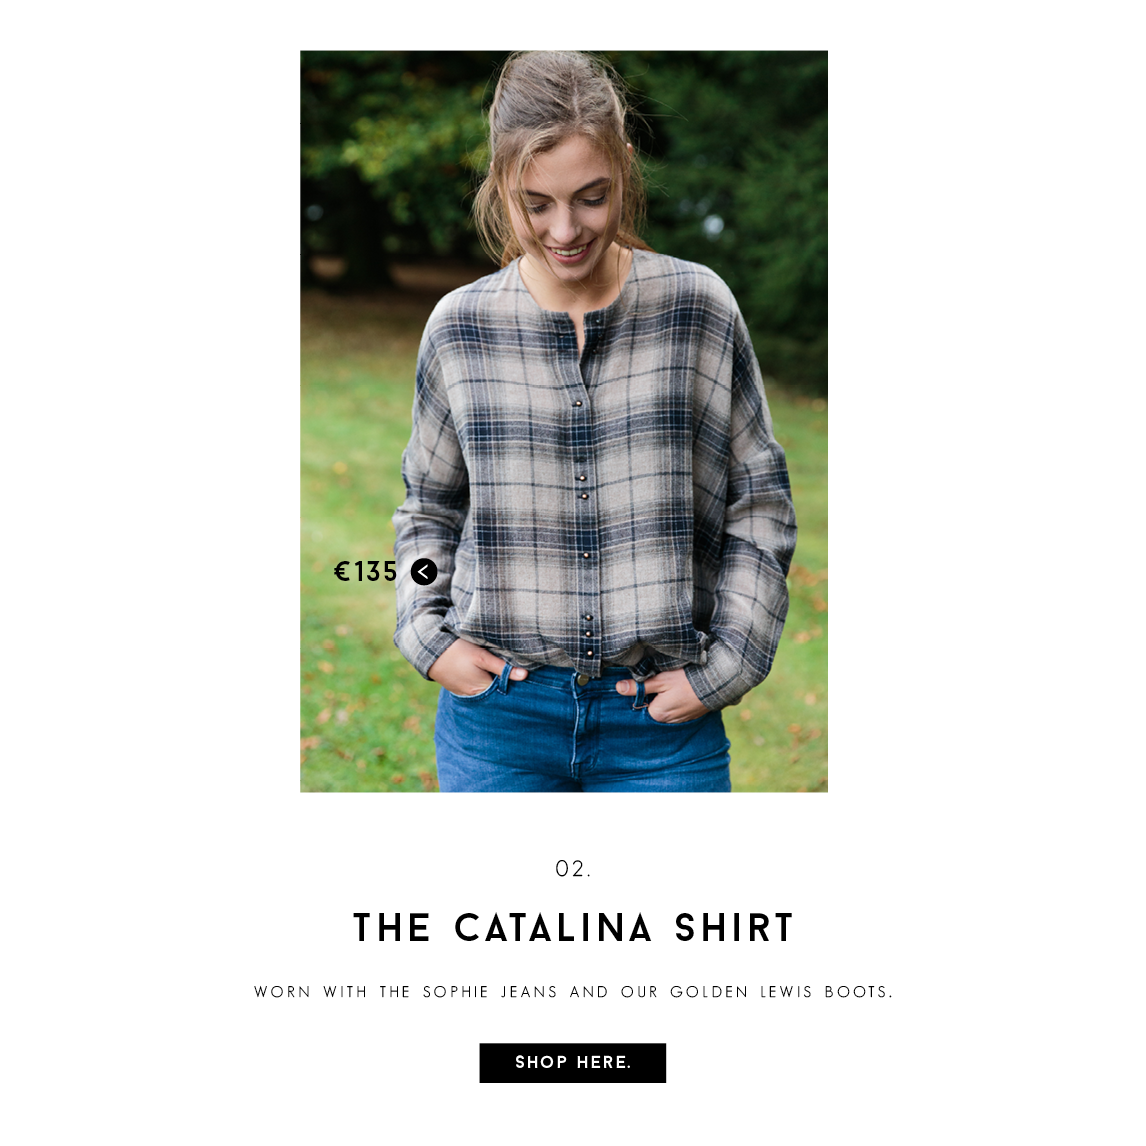 http://shoplily.be/collections/fall-getaway/products/catalina-shirt?variant=30569243399